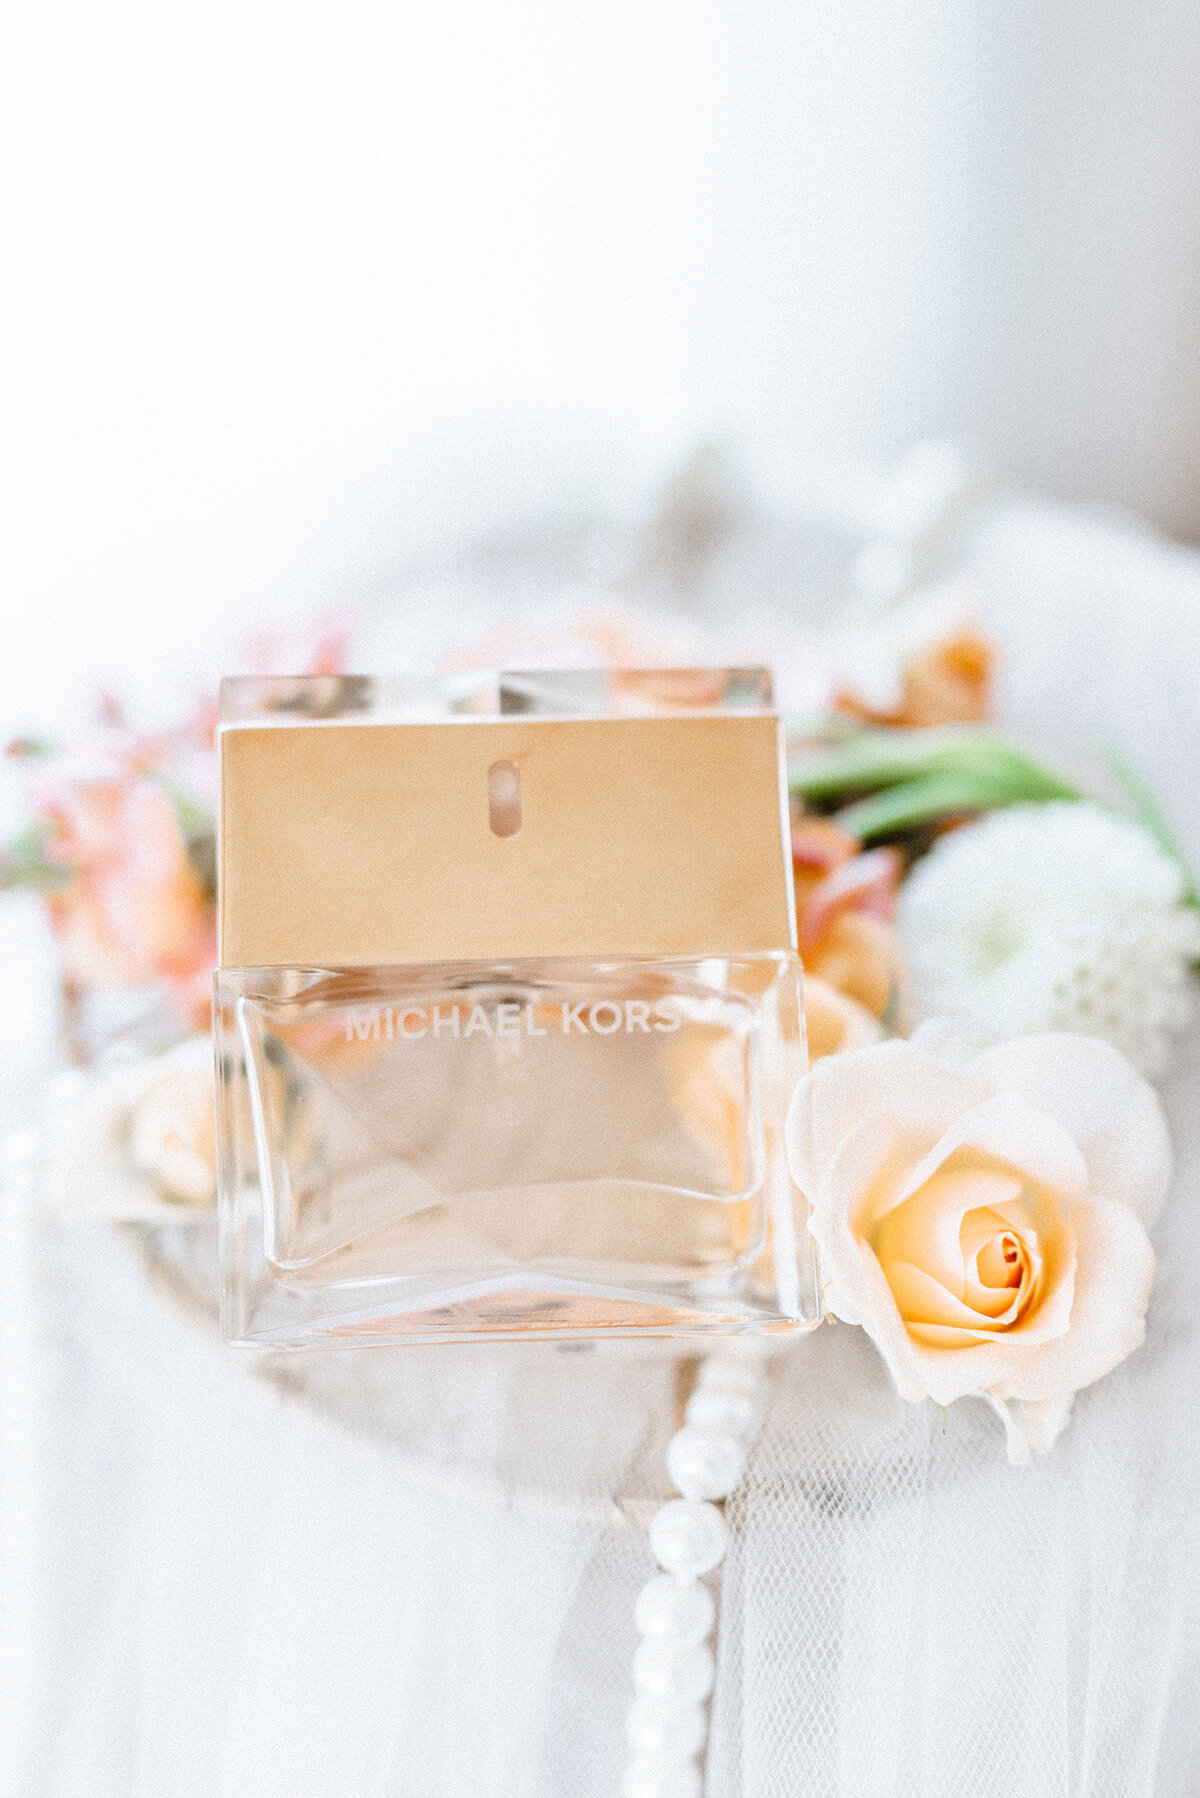 Michael Kors perfume wedding detail